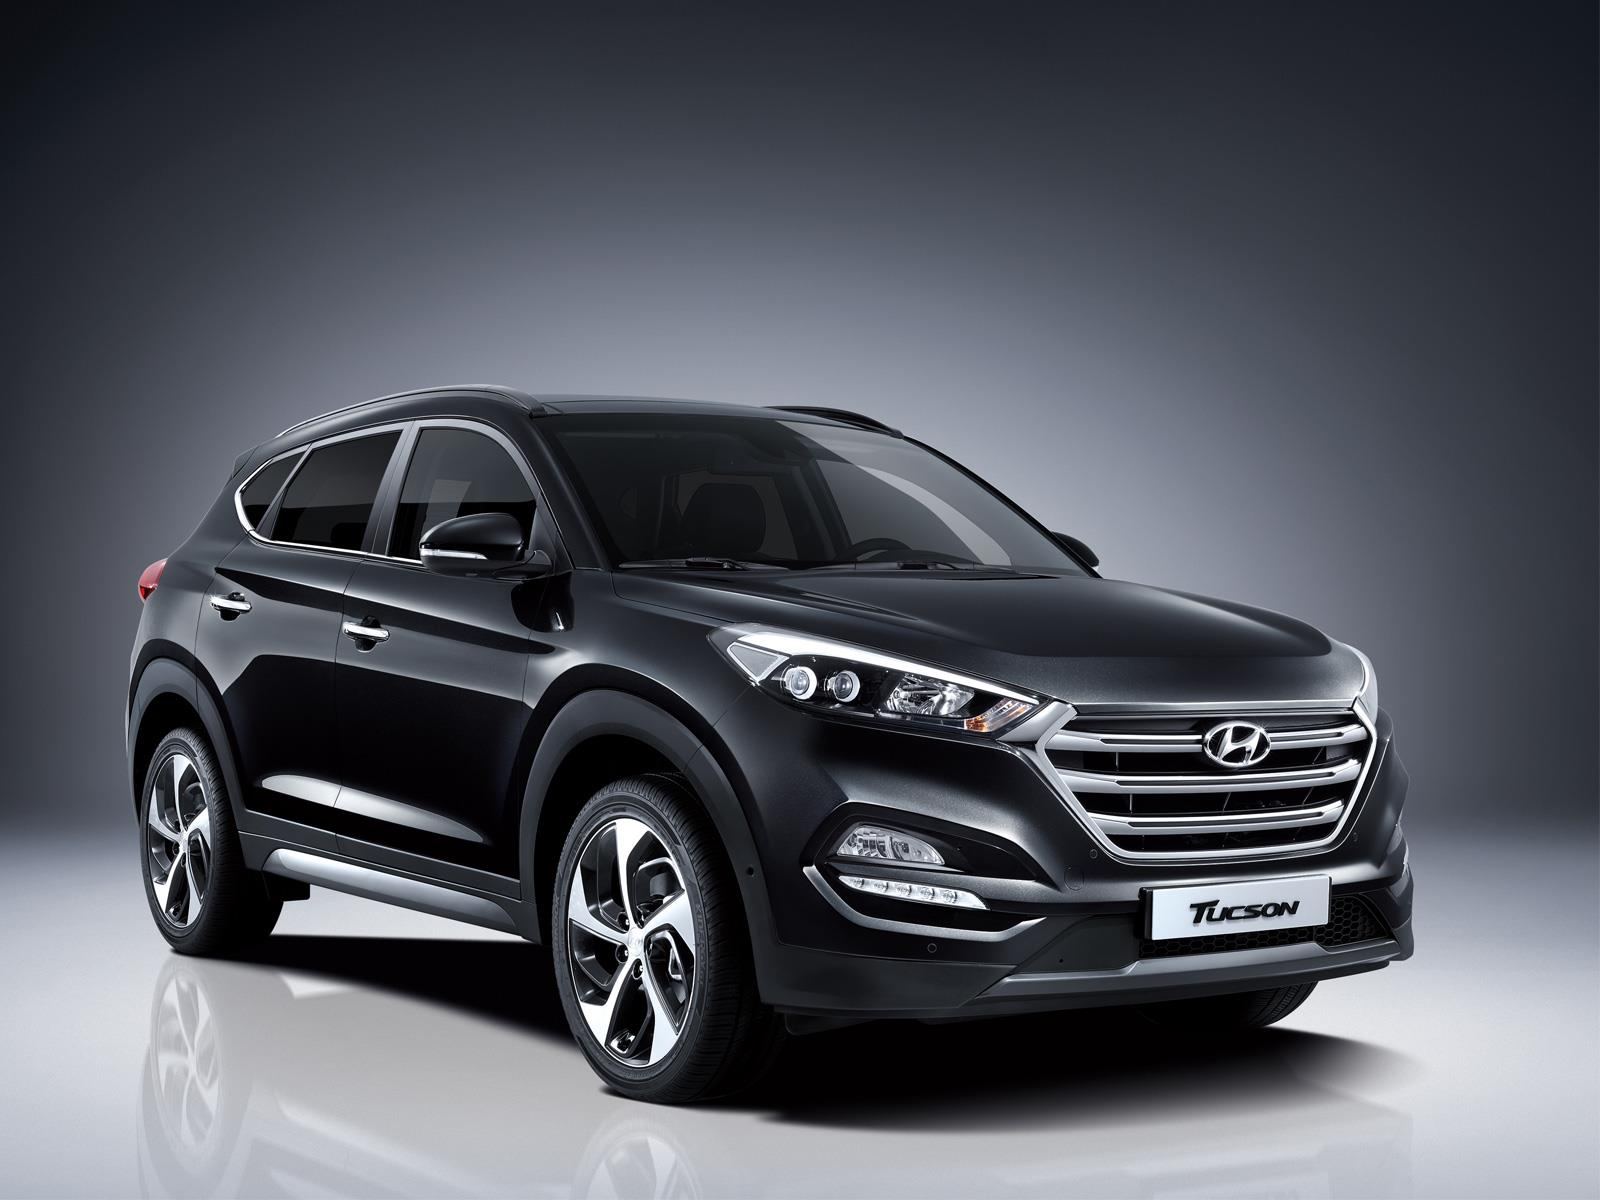 hyundai tucson 2016 llega a m xico desde 327 900 pesos. Black Bedroom Furniture Sets. Home Design Ideas